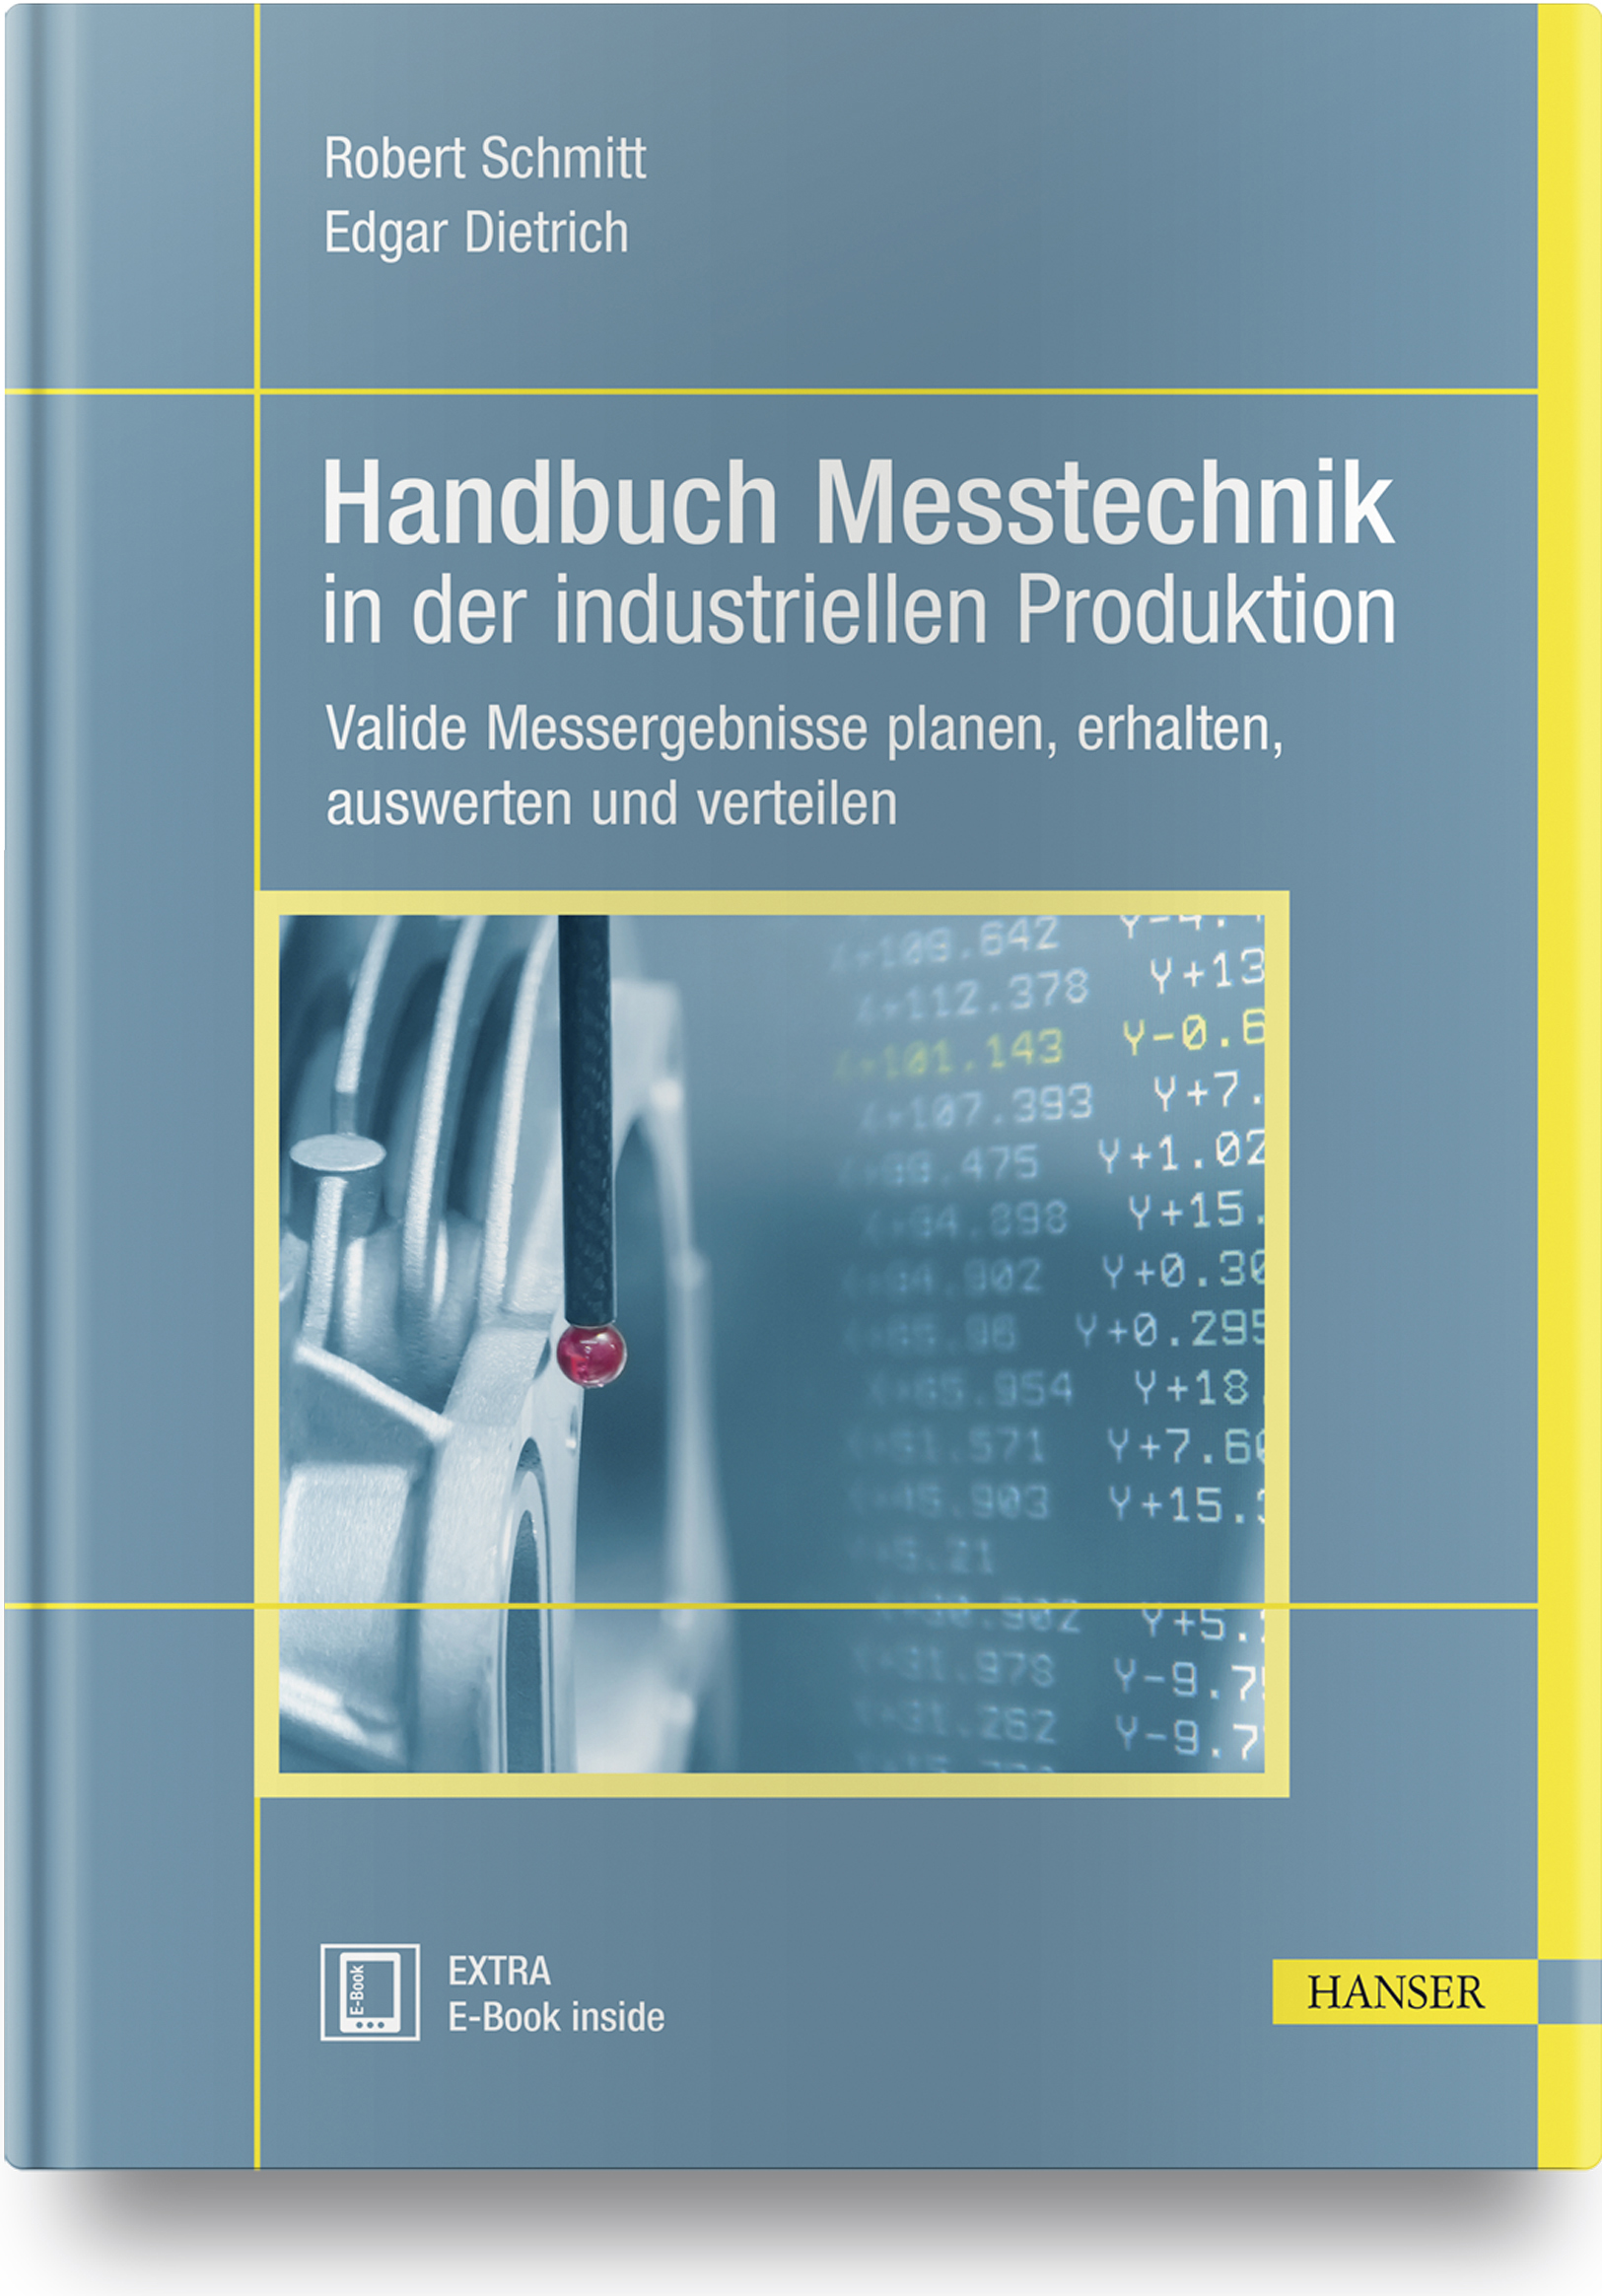 Handbuch Messtechnik in der industriellen Produktion, 978-3-446-46559-6